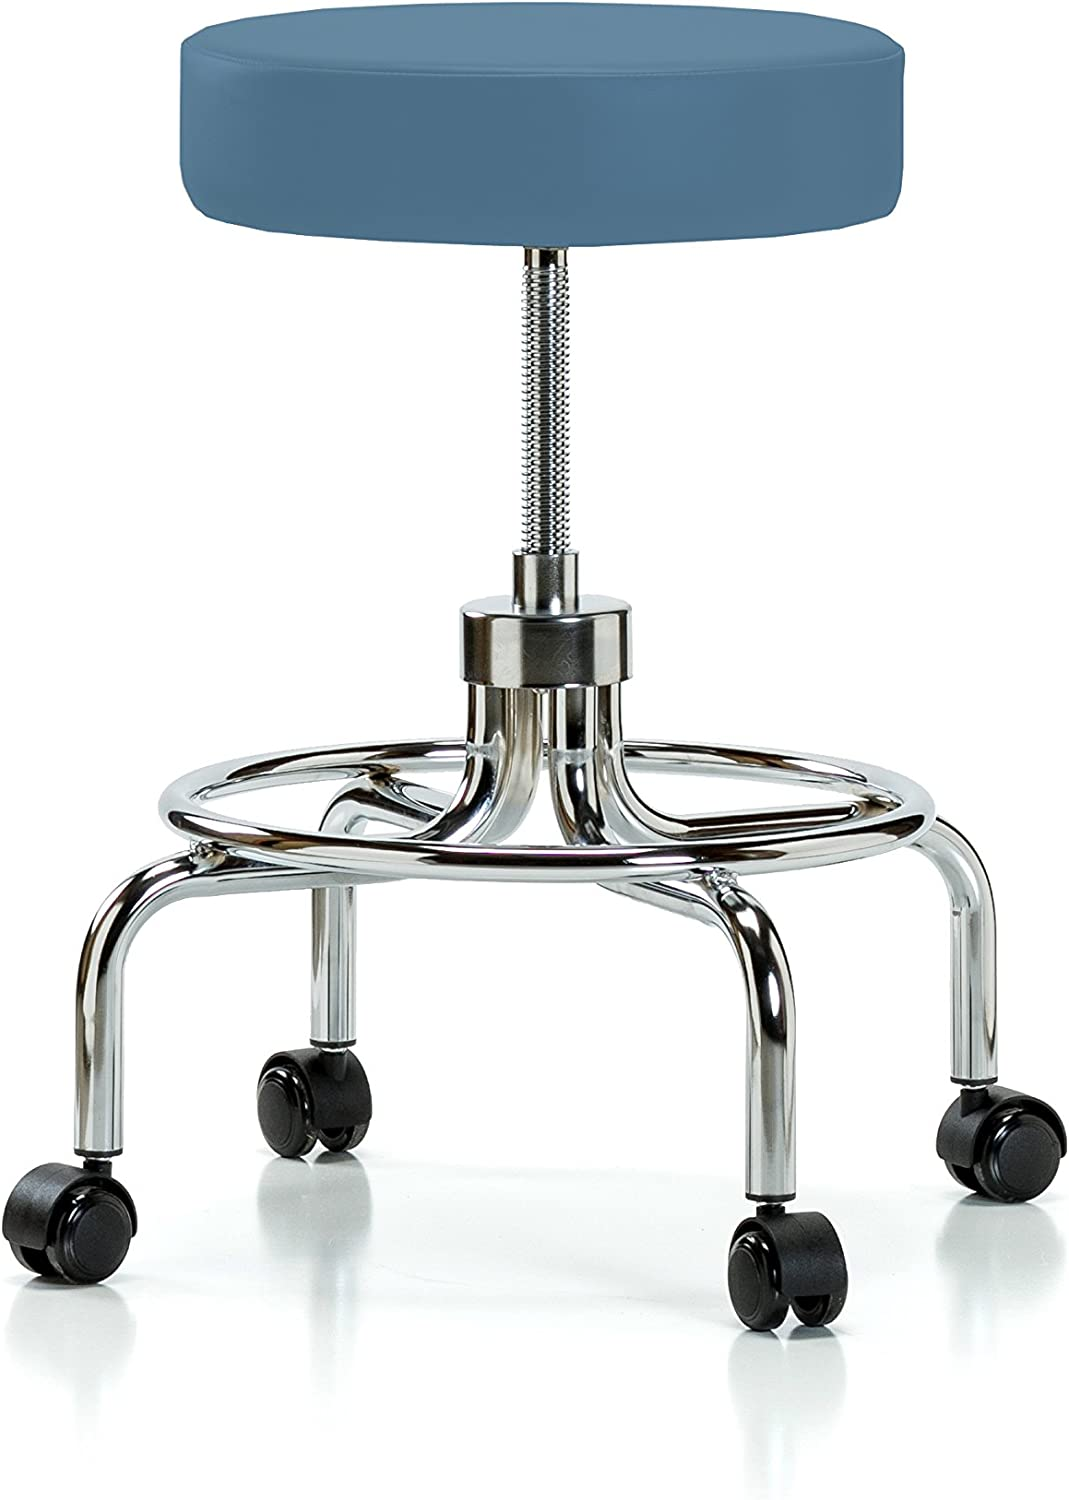 Perch Super-cheap Retro Rolling Exam Stool with Carpet or Wheels Linoleu for Branded goods